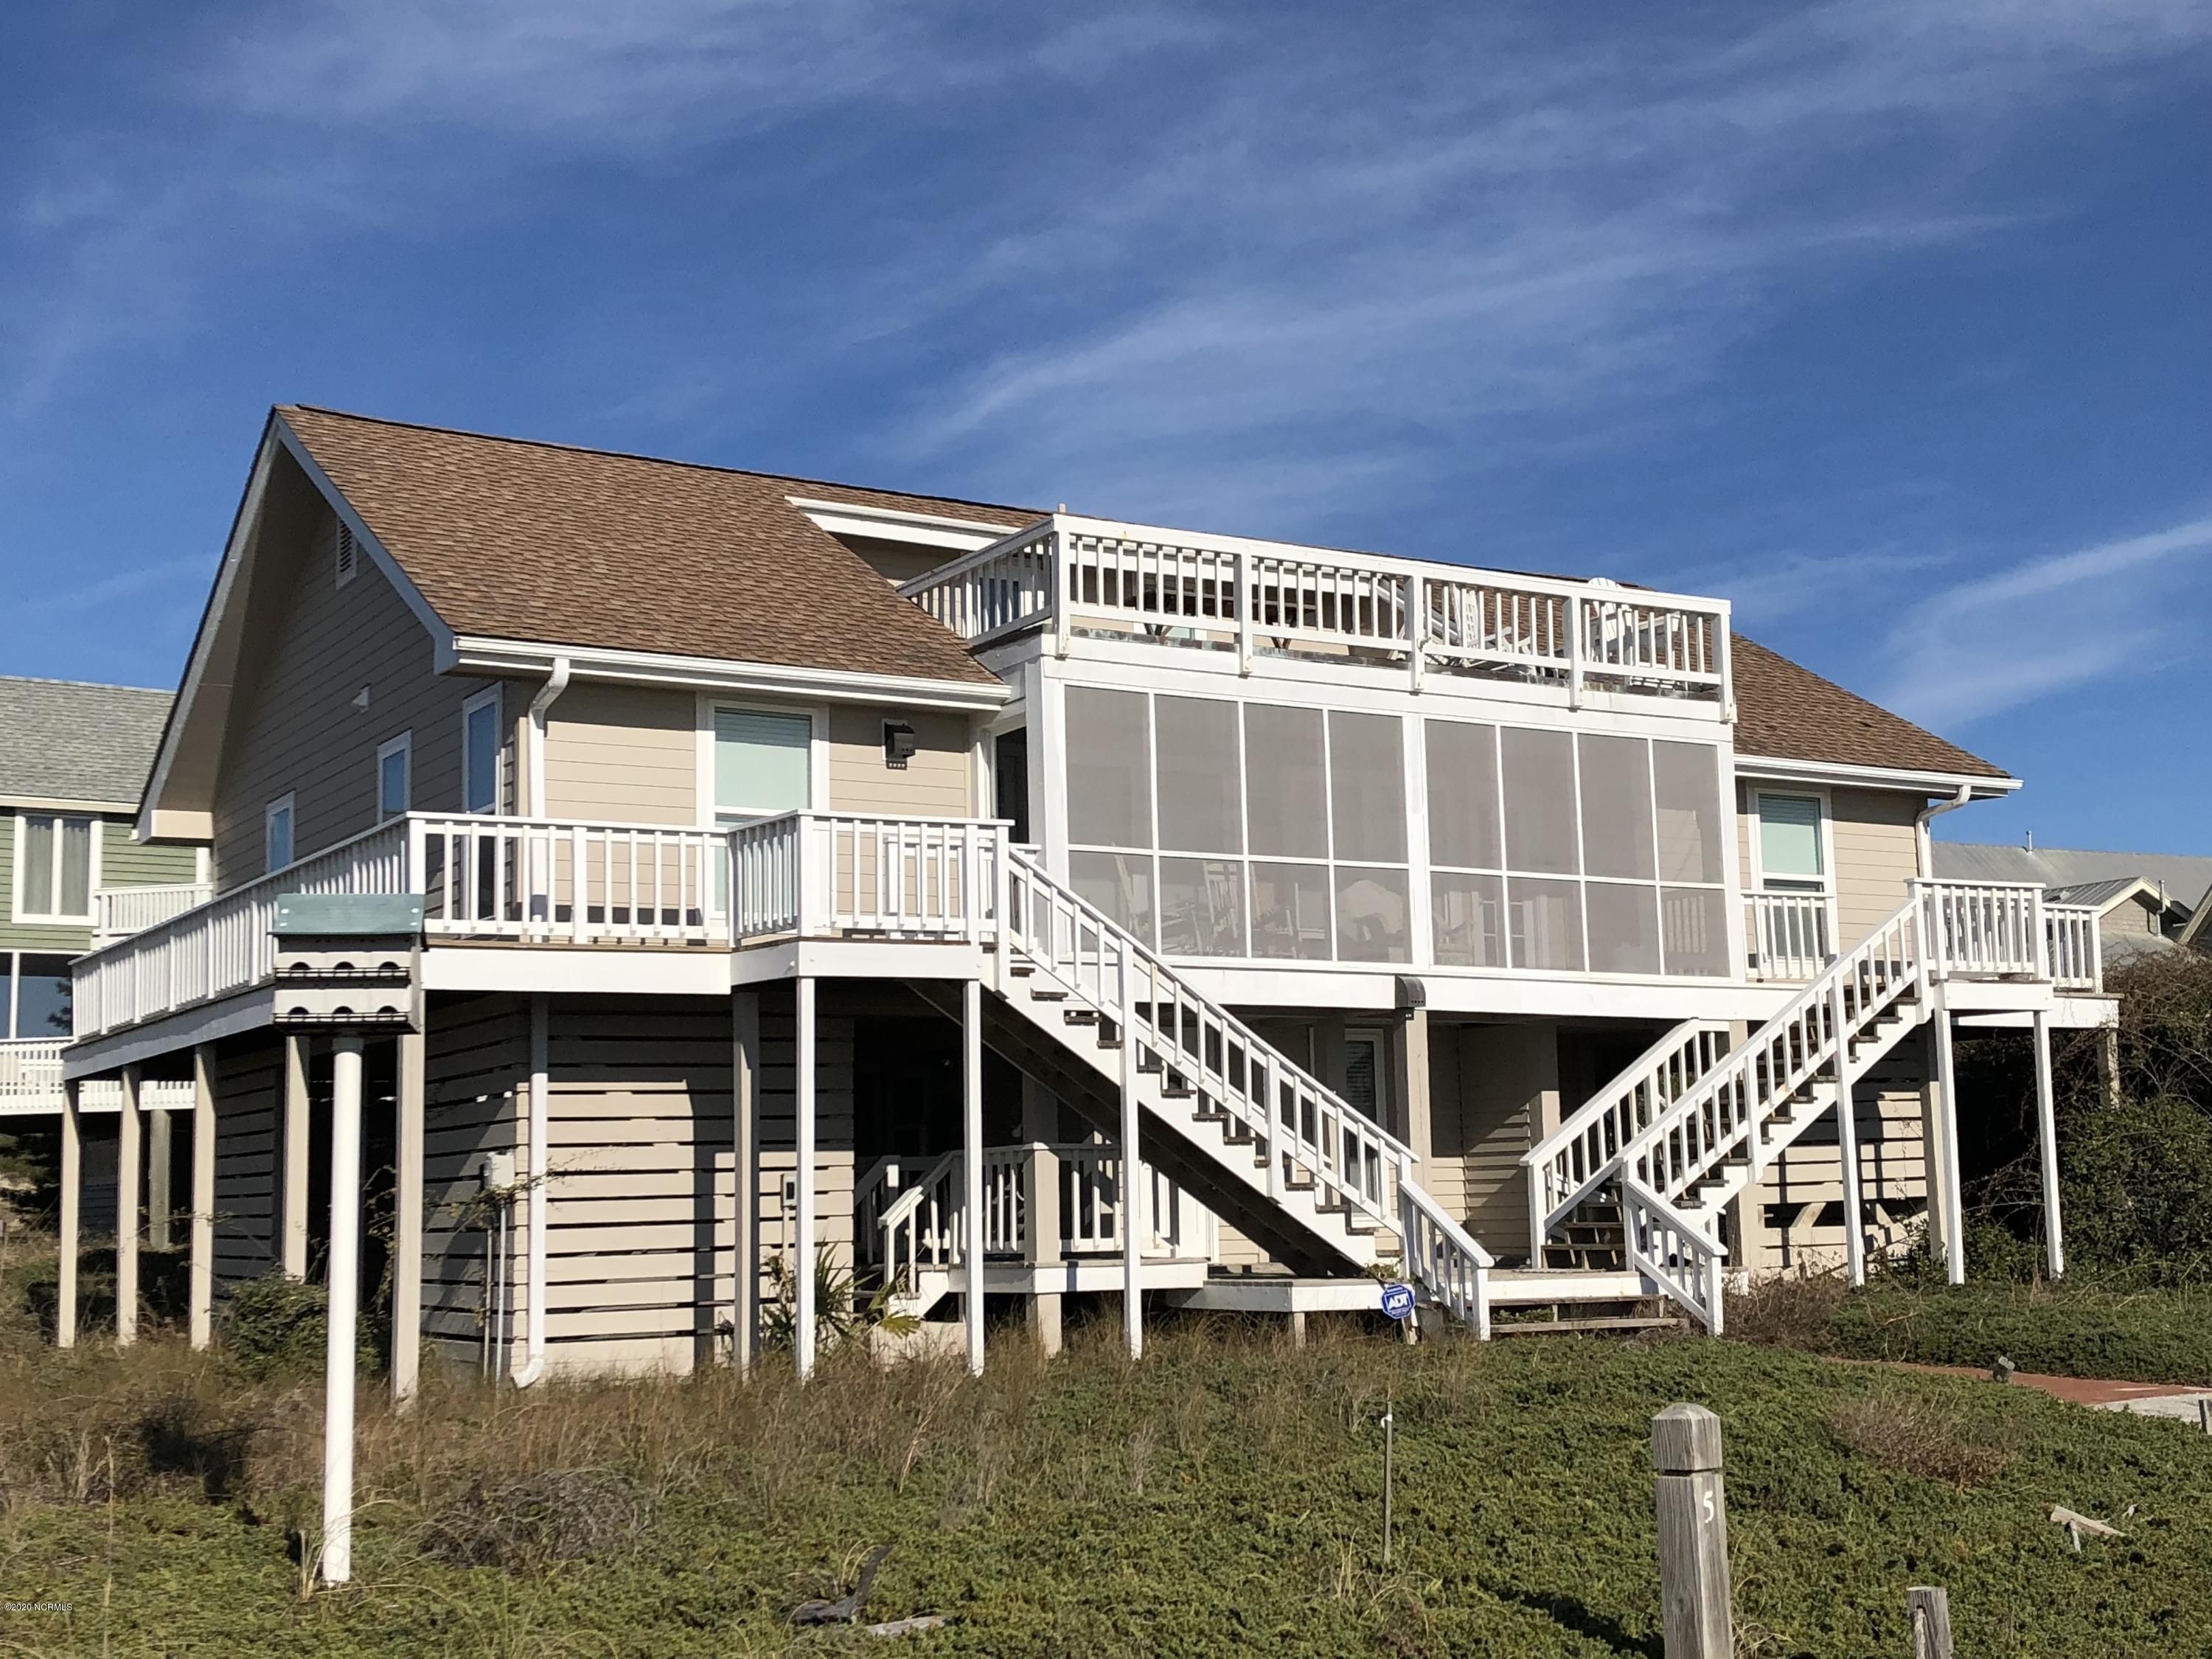 5 Silversides Trail, Bald Head Island, North Carolina 28461, 4 Bedrooms Bedrooms, 7 Rooms Rooms,2 BathroomsBathrooms,Single family residence,For sale,Silversides,100224881